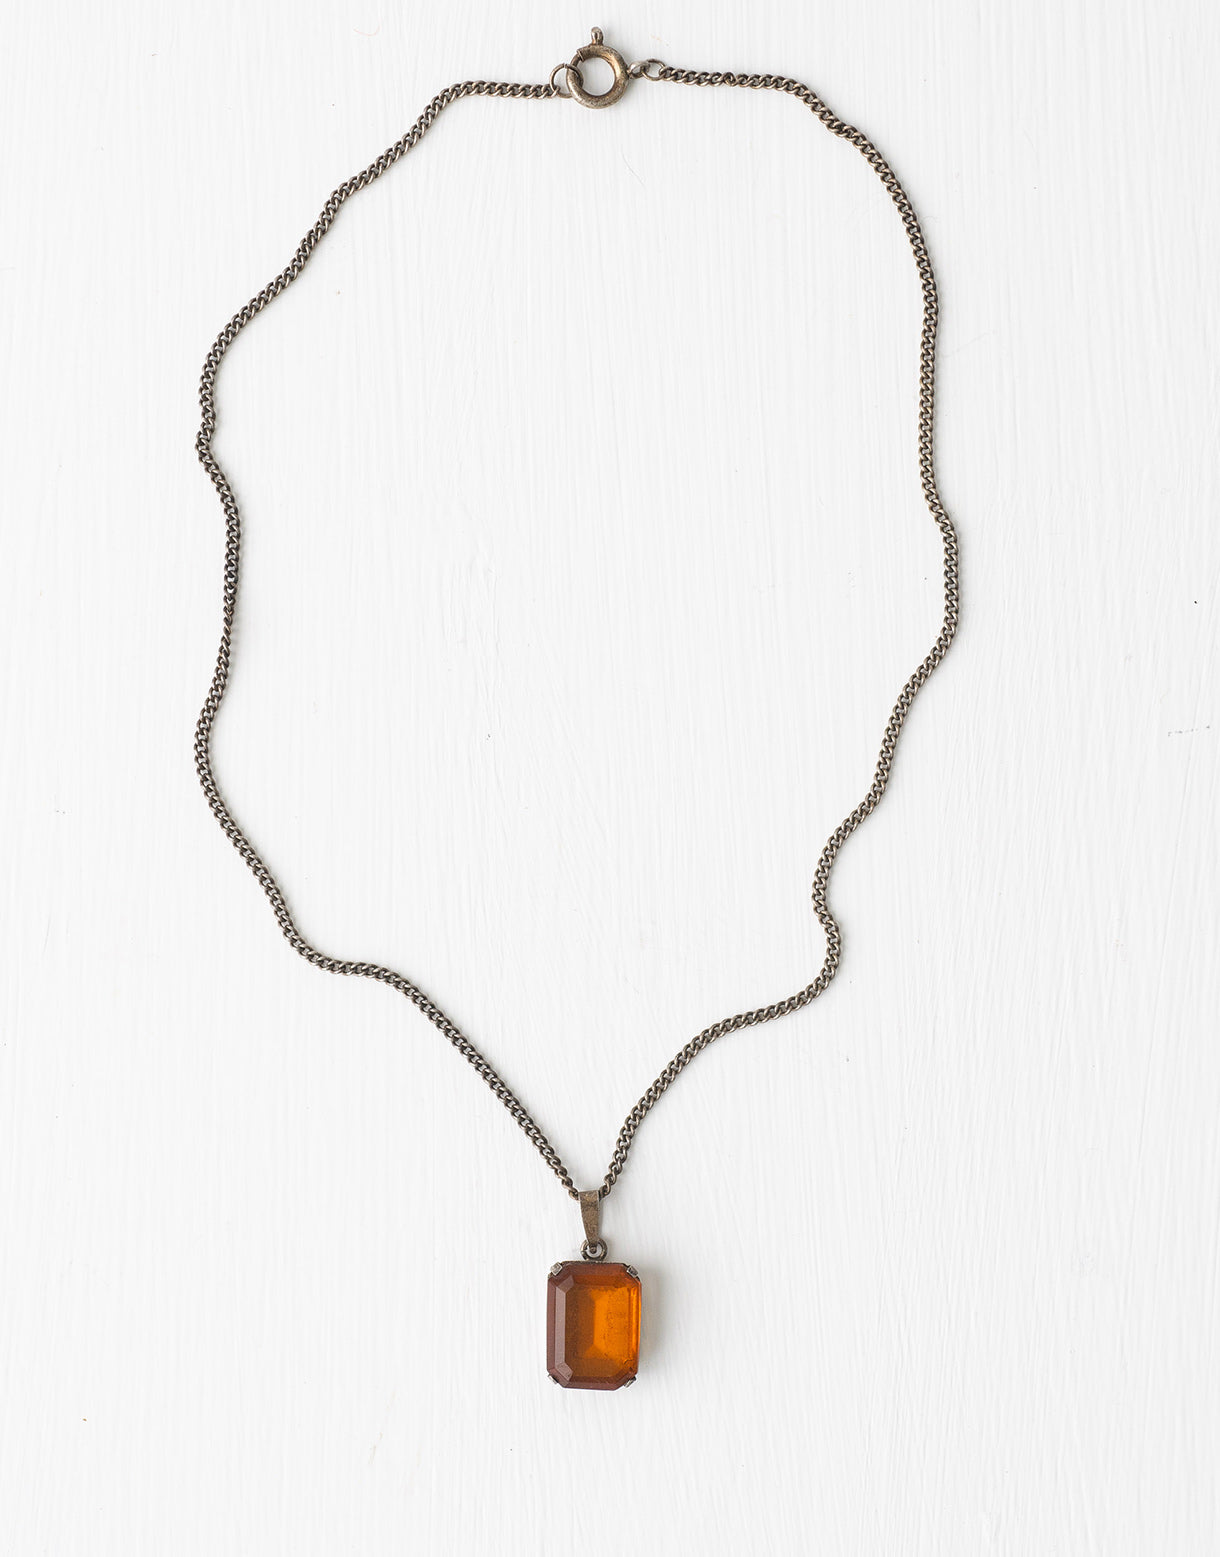 Vintage 1920s amber glass necklace